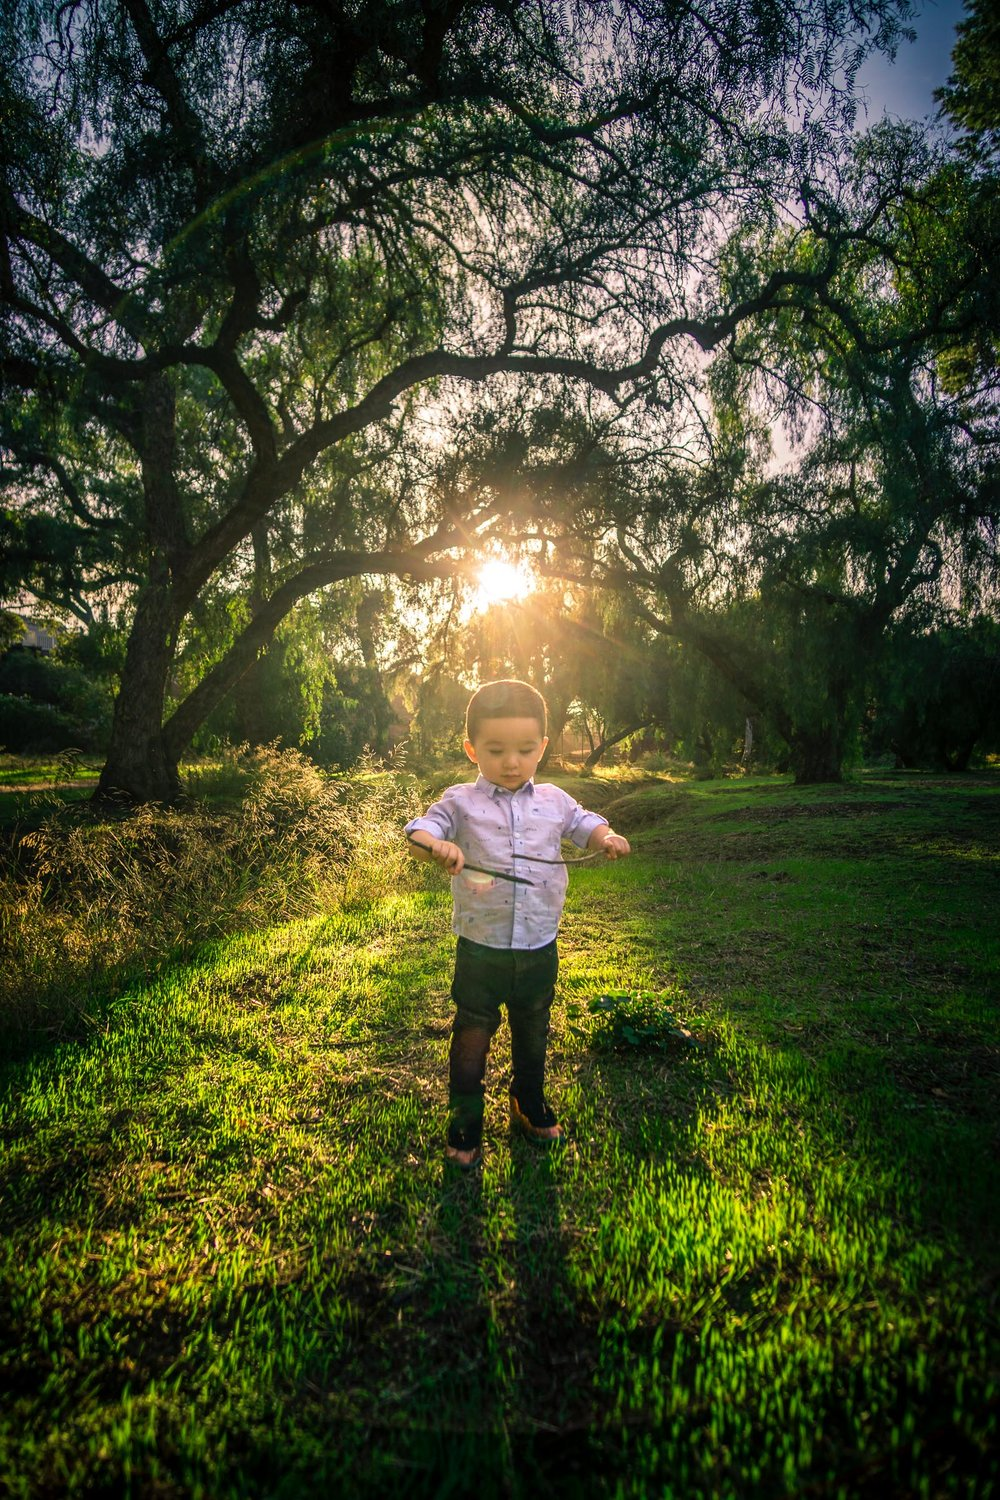 Candid portrait of a little boy playing during a Family portrait photo shoot in Fullerton on the Juanita Cooke Hiking Trail with green trees and grass and the golden hour sun